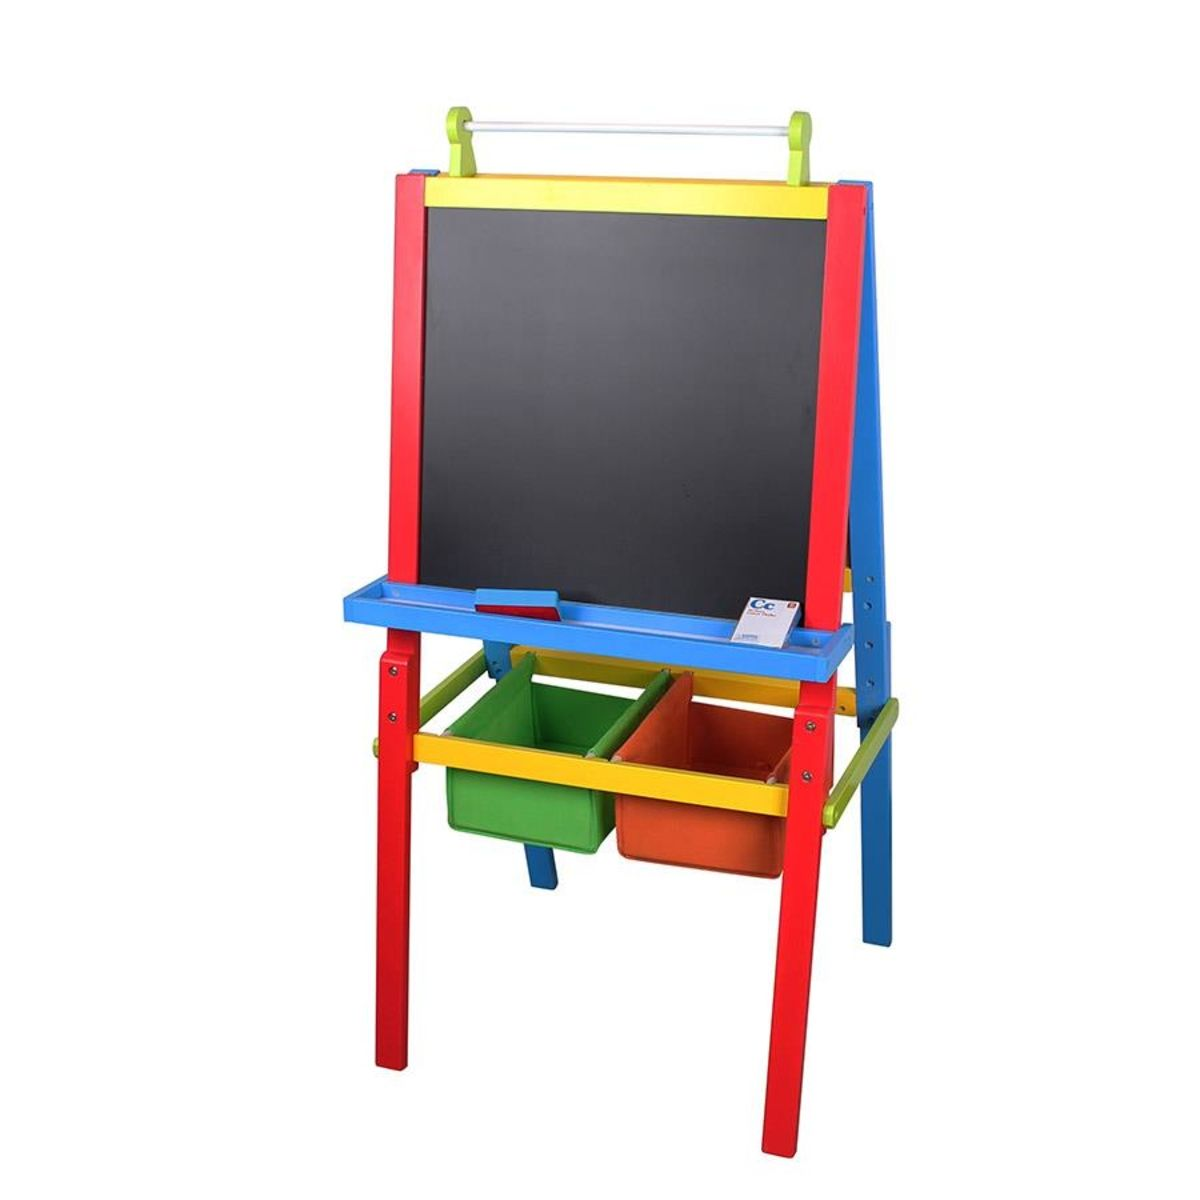 3 in 1 Art Easel | Kmart | Baby | Pinterest | Art easel and Babies